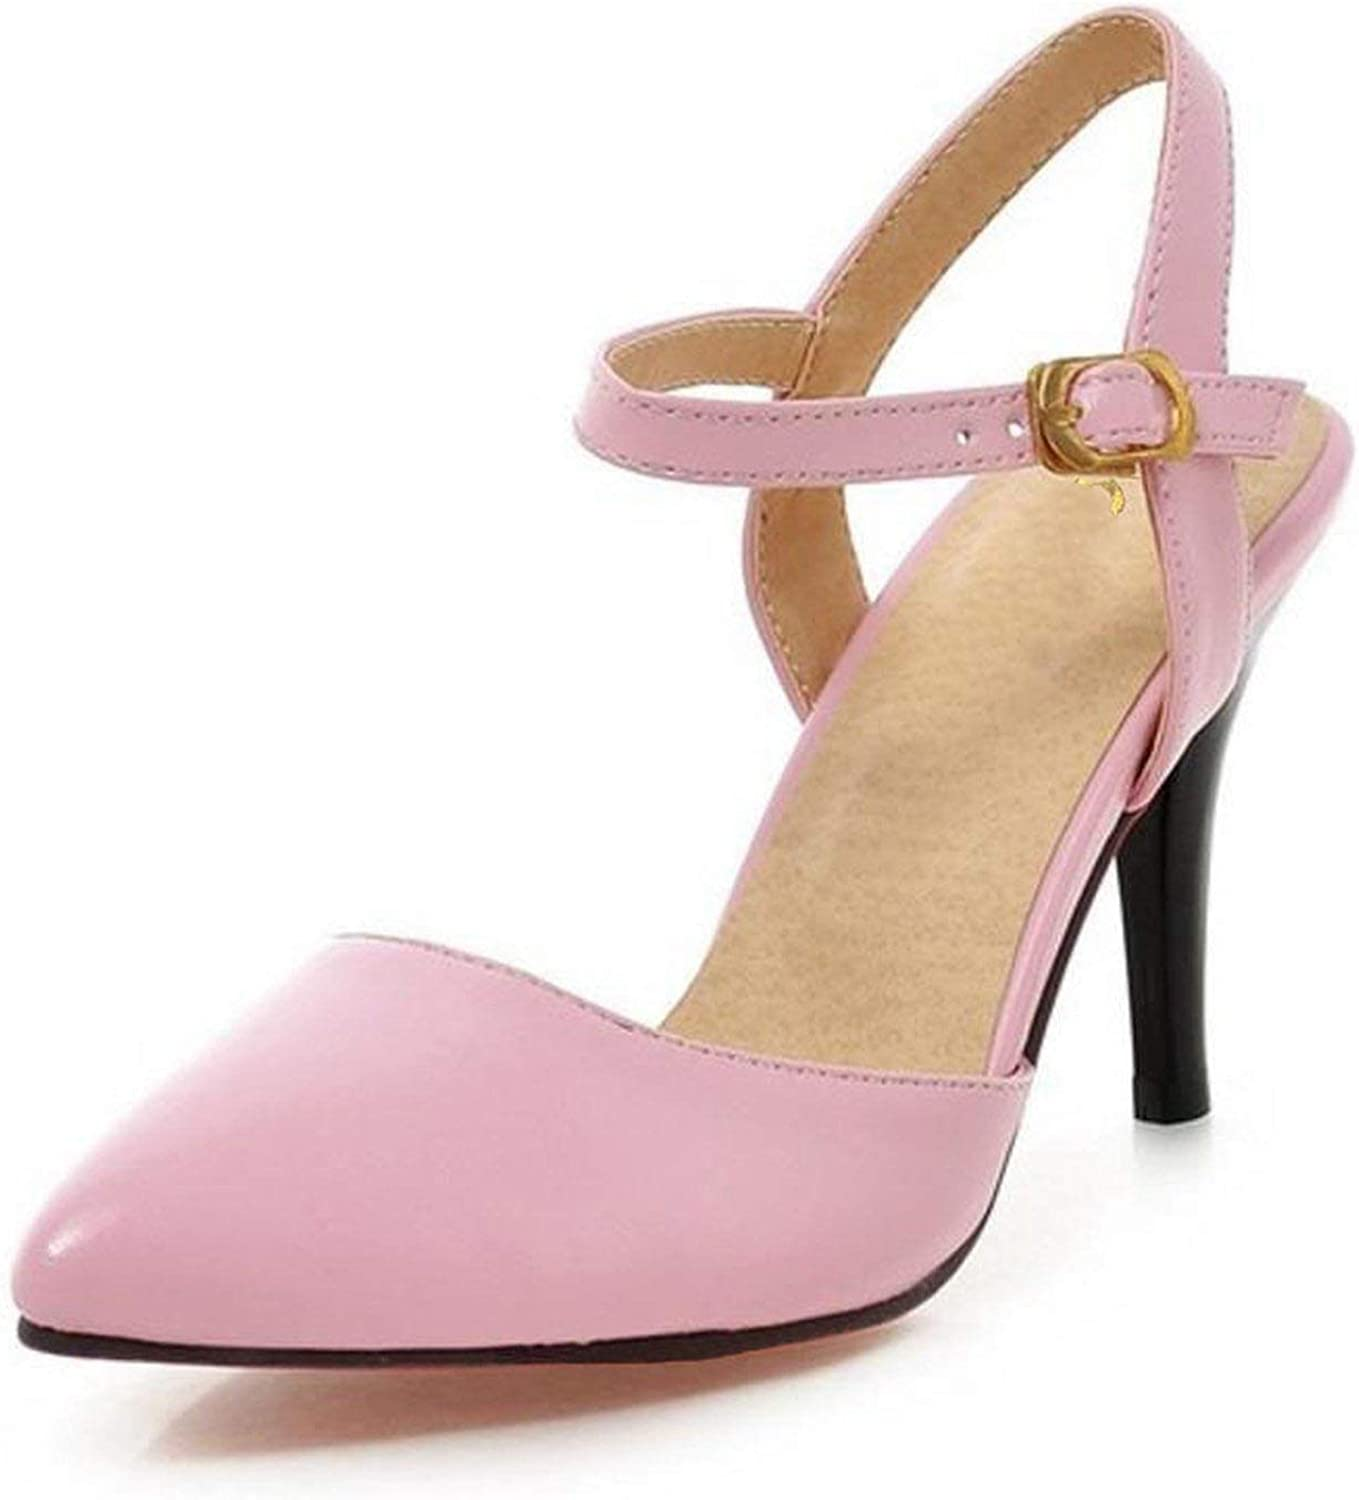 Houfeoans Women's Ankle Strap Pointed Toe high Heel Sandals Sexy Fashion Heeled shoes Large P23535